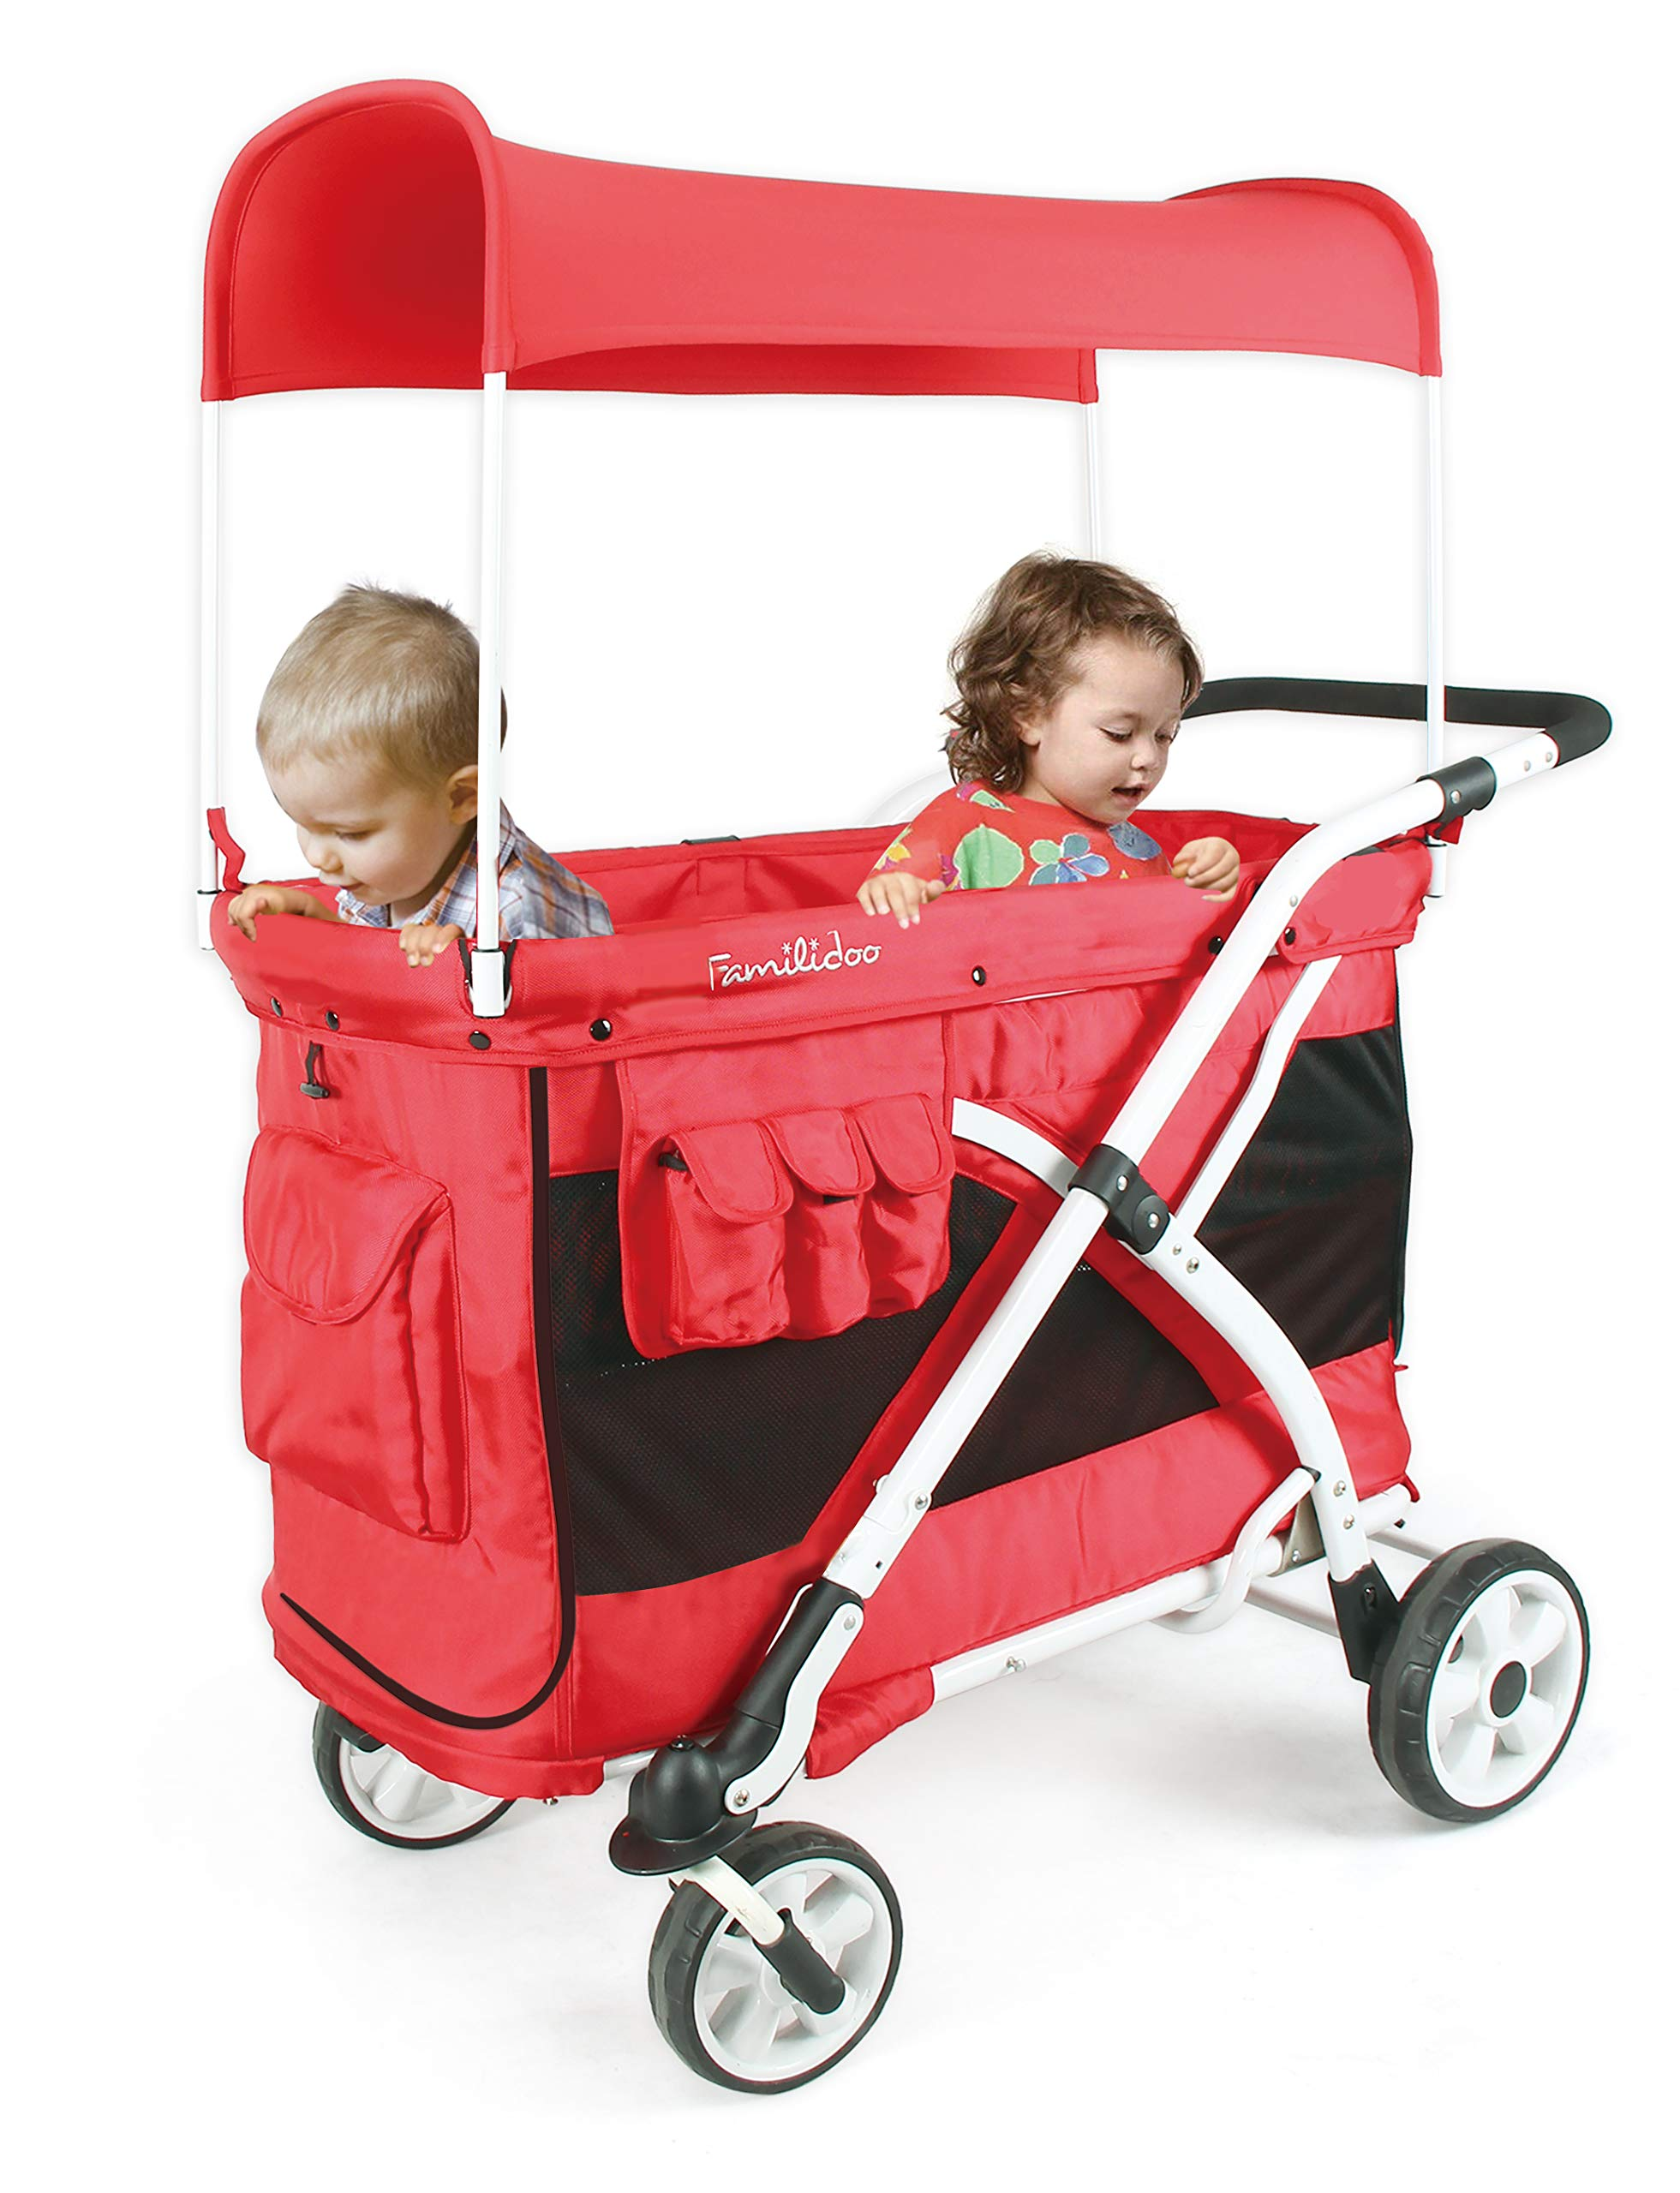 Familidoo Multi-Purpose 6 in 1 Large Twin Size Toddler Baby Folding Stroller Chariot Wagon, Red by FAMILIDOO (Image #7)